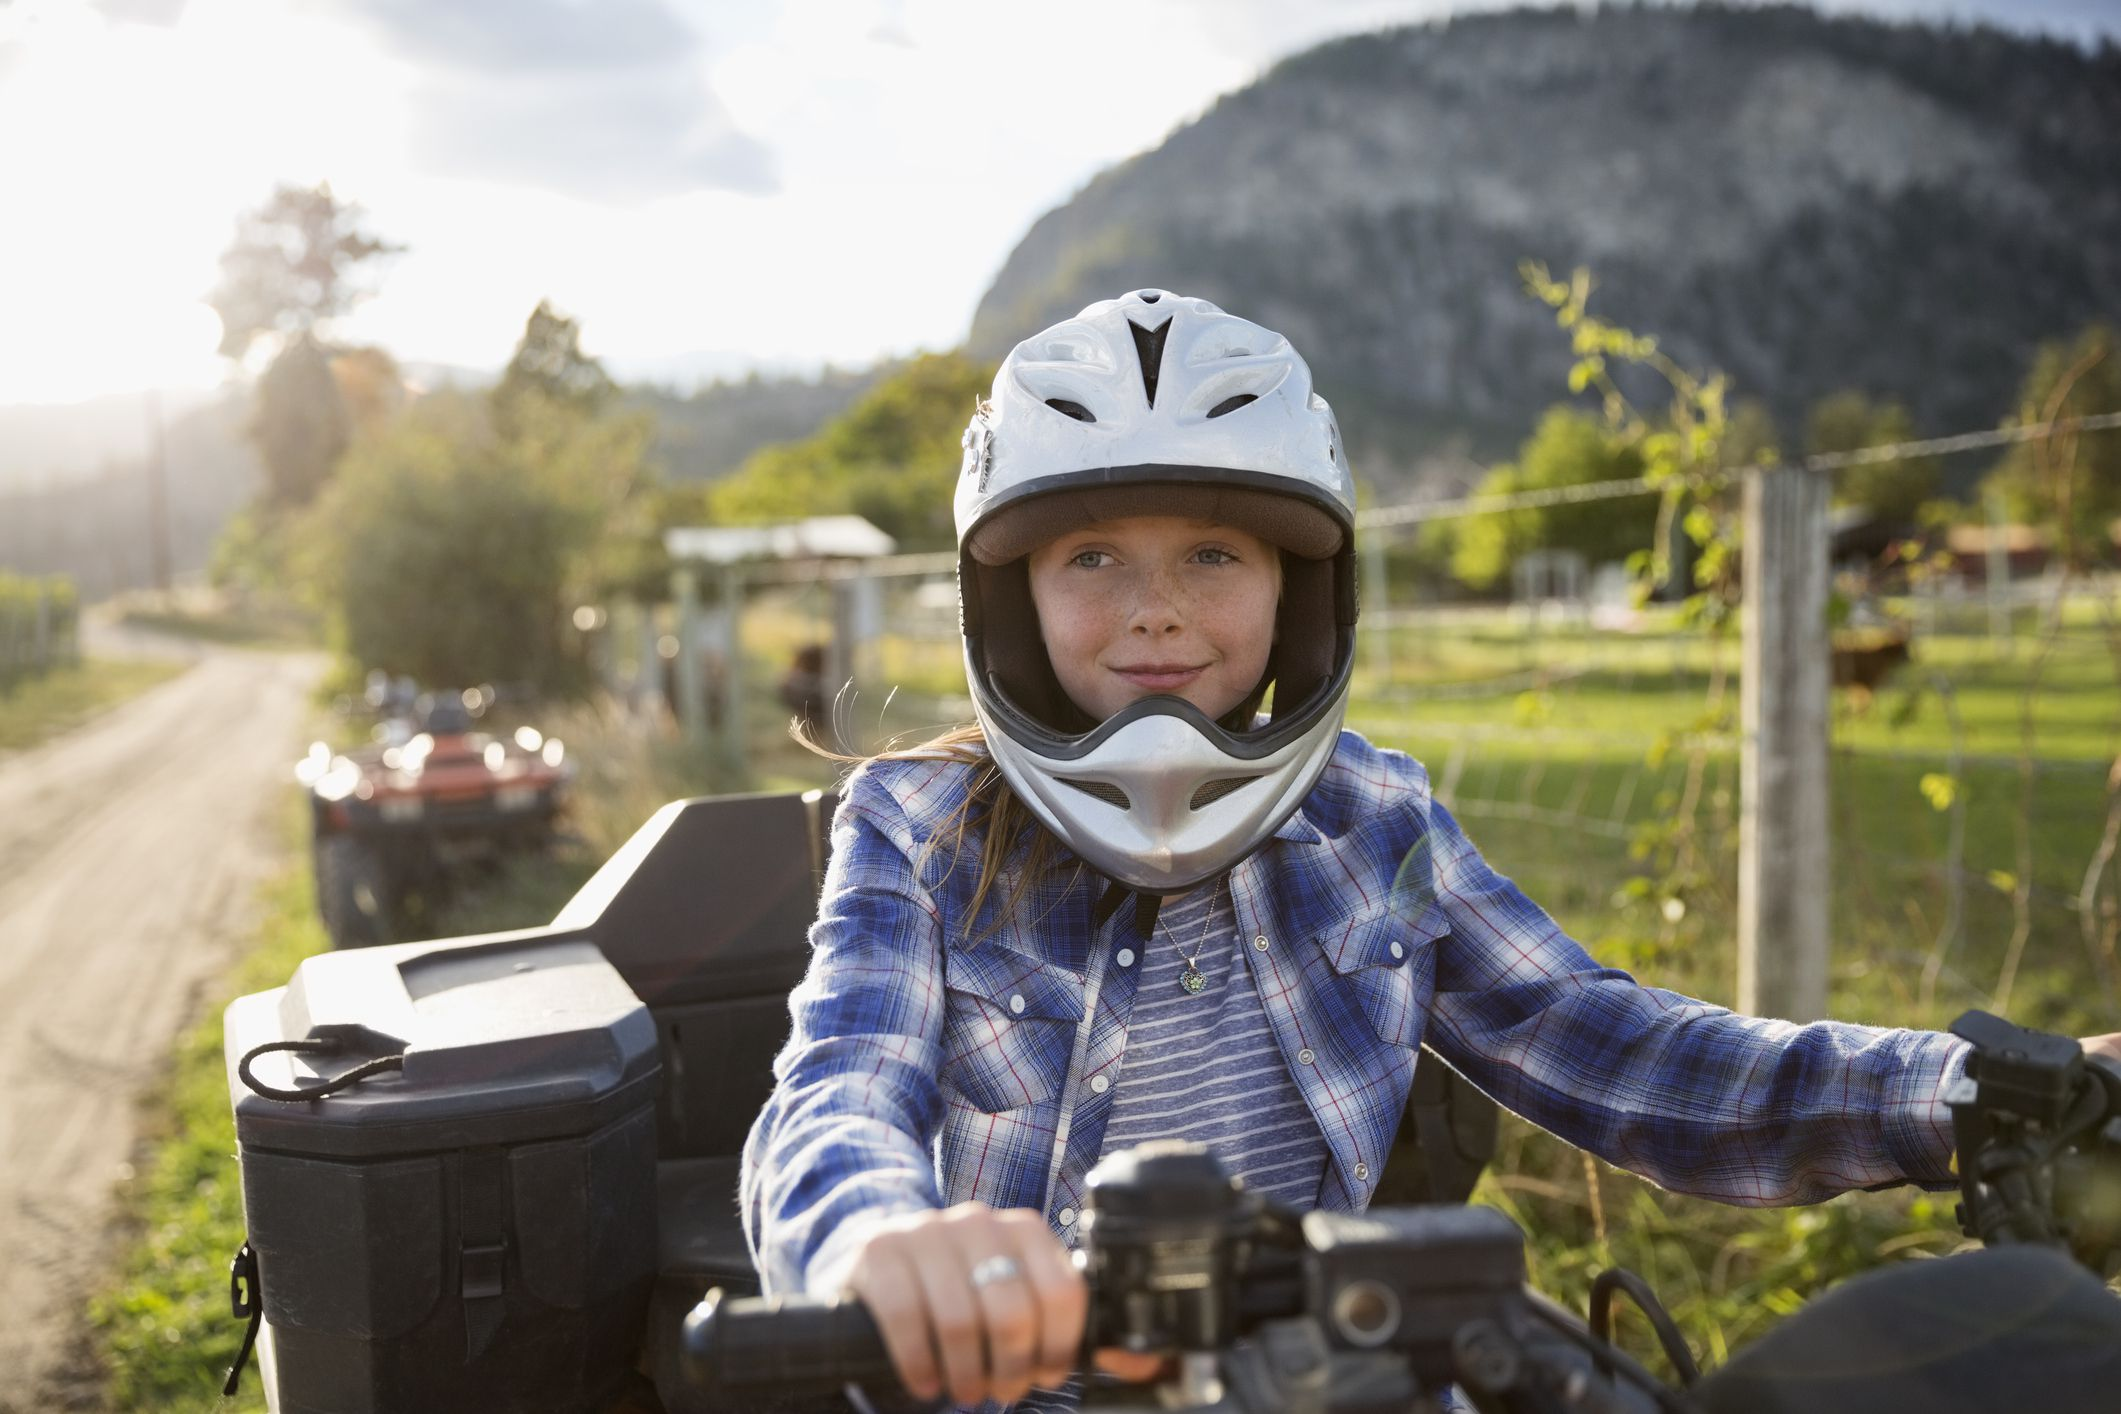 ATV Accidents and Dangers for Kids